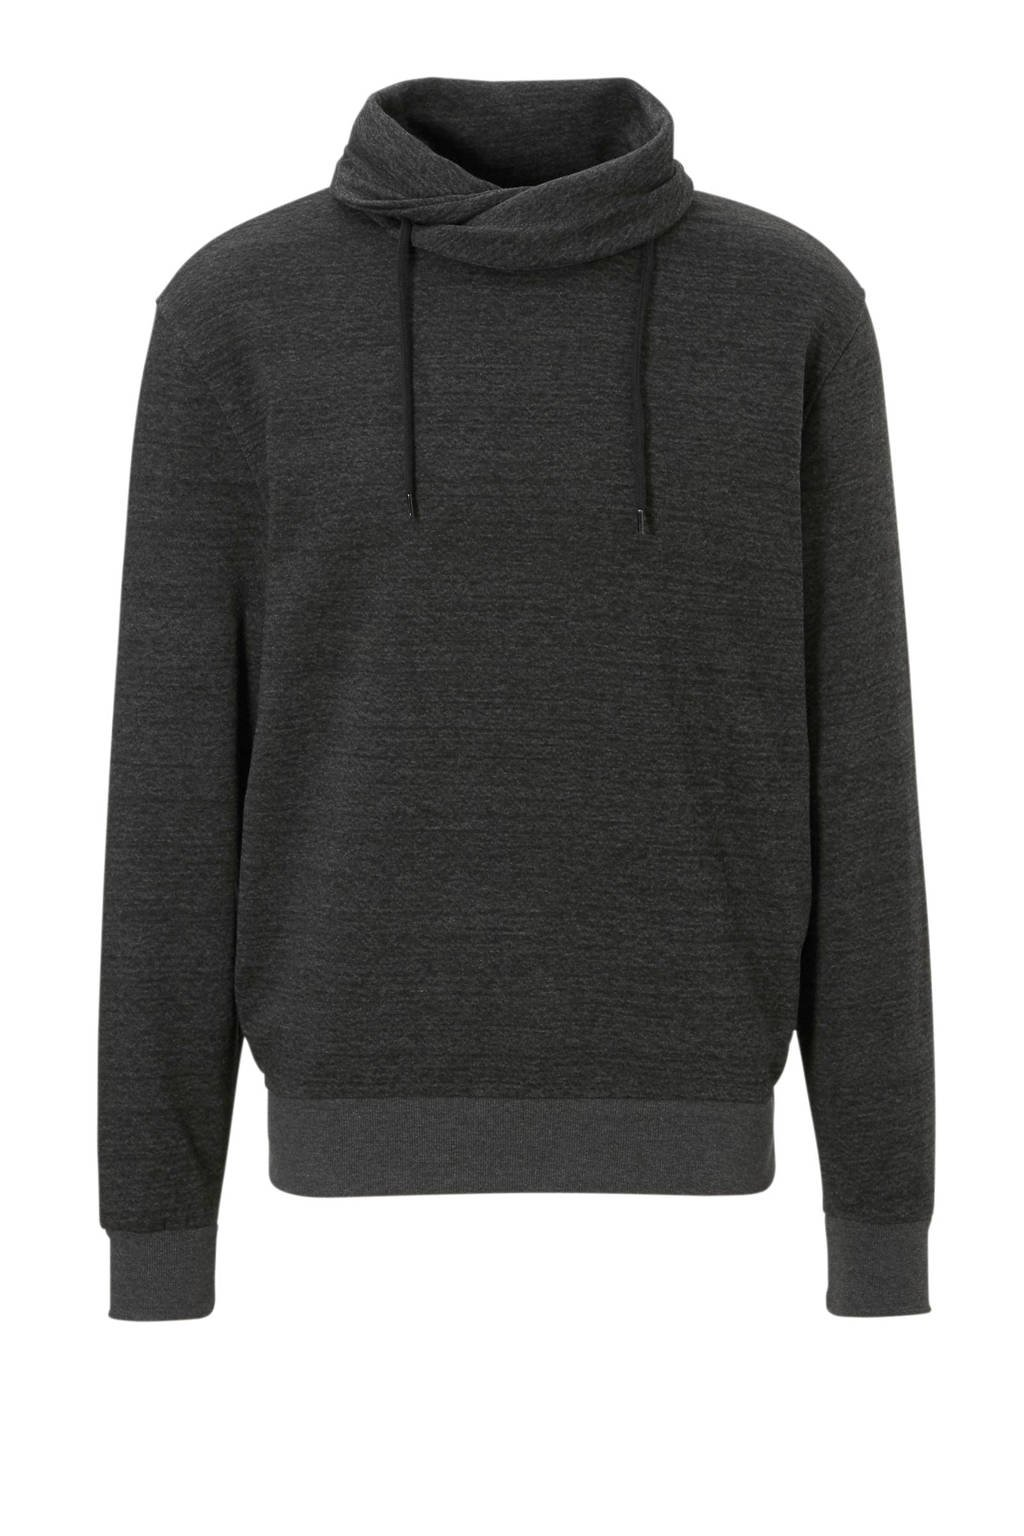 C&A Angelo Litrico gemêleerde sweater antraciet, Antraciet